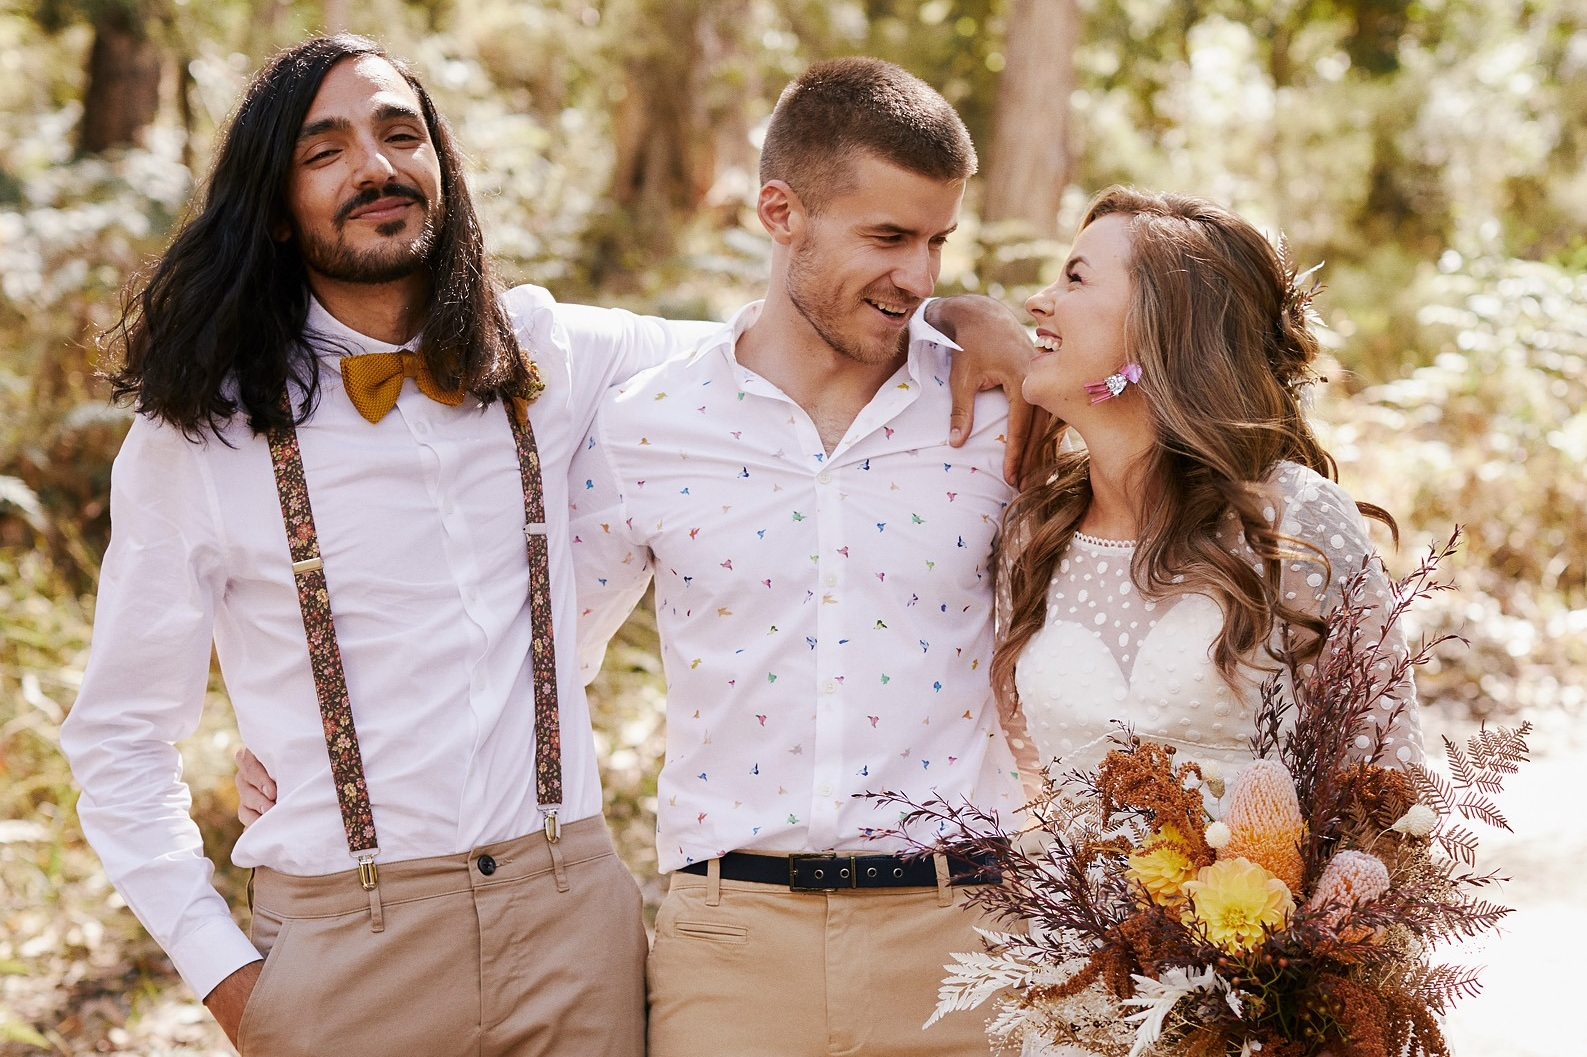 A BIT ABOUT ME - 👈 That's me, my sister and her new husband, moments after I married THE HECK out of them in February, 2019.But that's not how this incredible gig began. It began in early 2017 with a random phone call from mum in country NSW, who suggested that I become a celebrant. I had so many other things going on at the time, so I politely thanked mum for her 'crazy idea' which as it turns out, wasn't so crazy after all! And to this day, mum still asks for a commission. 🙄So after 18 months of hustling in the name of love, I've married 116 awesome people. And now, I'm a full time marriage celebrant which is honestly THE BEST gig in the world! And I know this because every time someone asks me what I do for a crust, I smile like an idiot :-)Yeah, so this 'job' is kind of addictive…